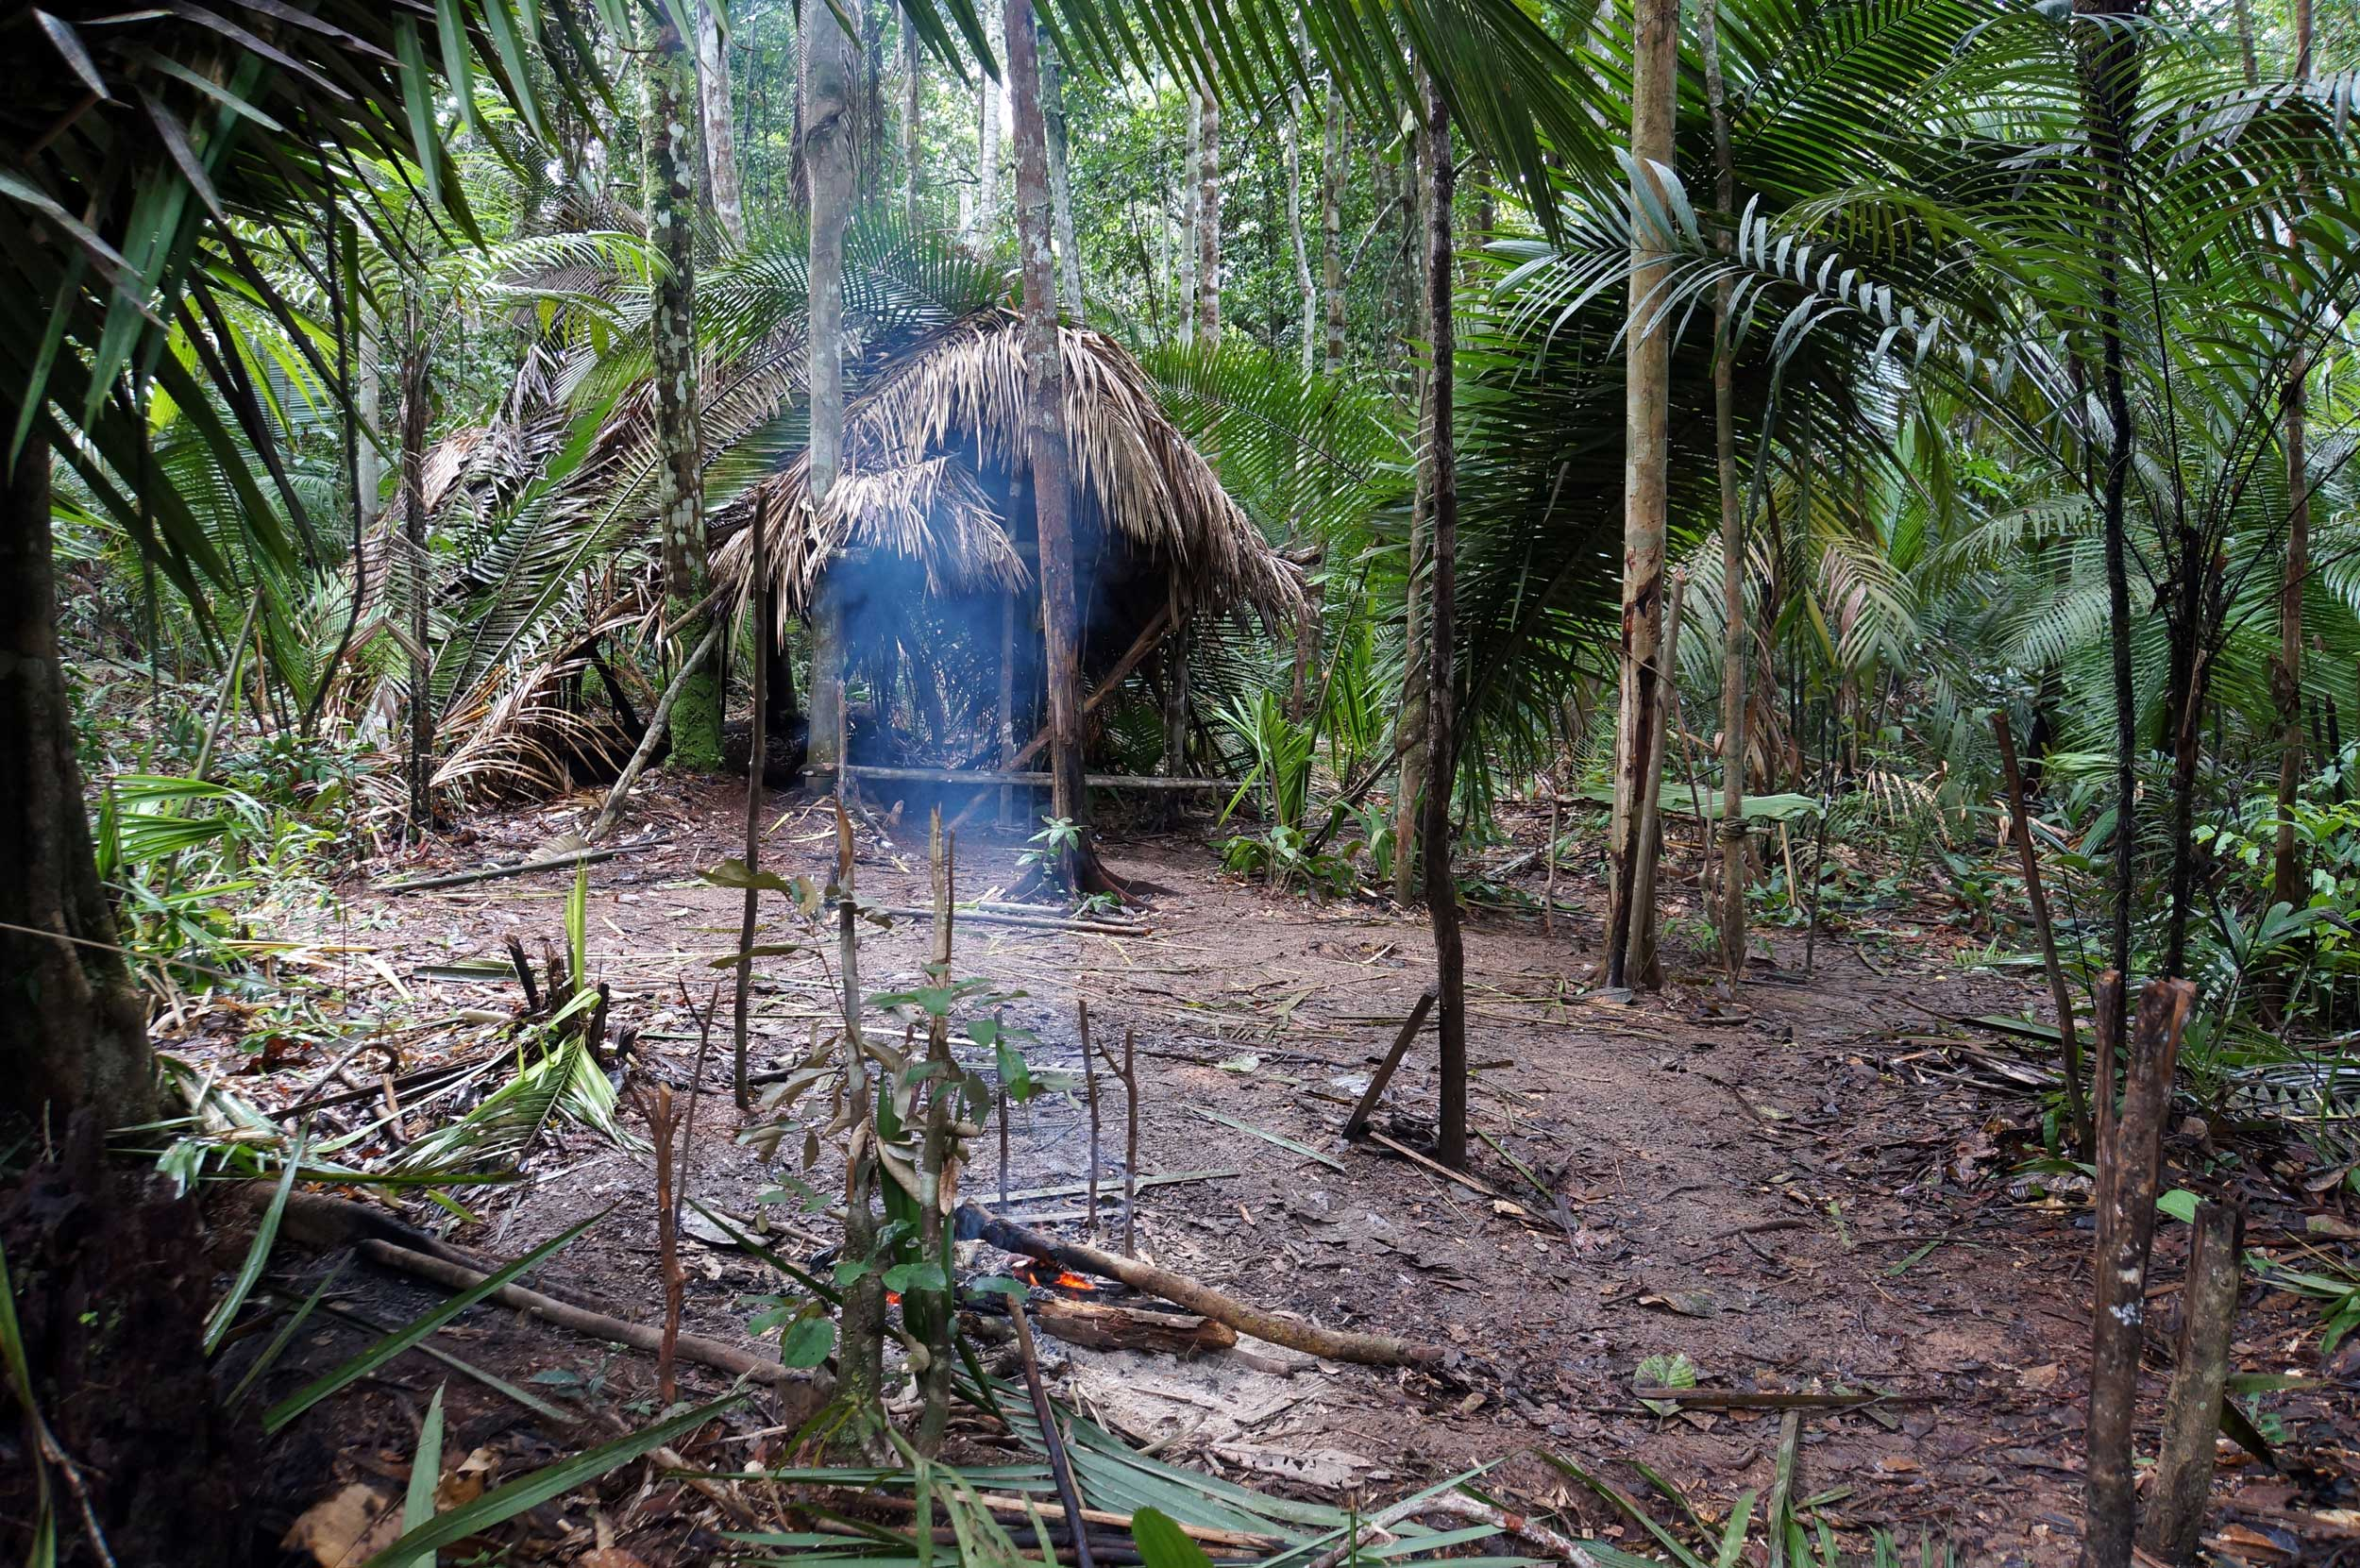 A small fern-thatched hut in a jungle clearing in the Amazon